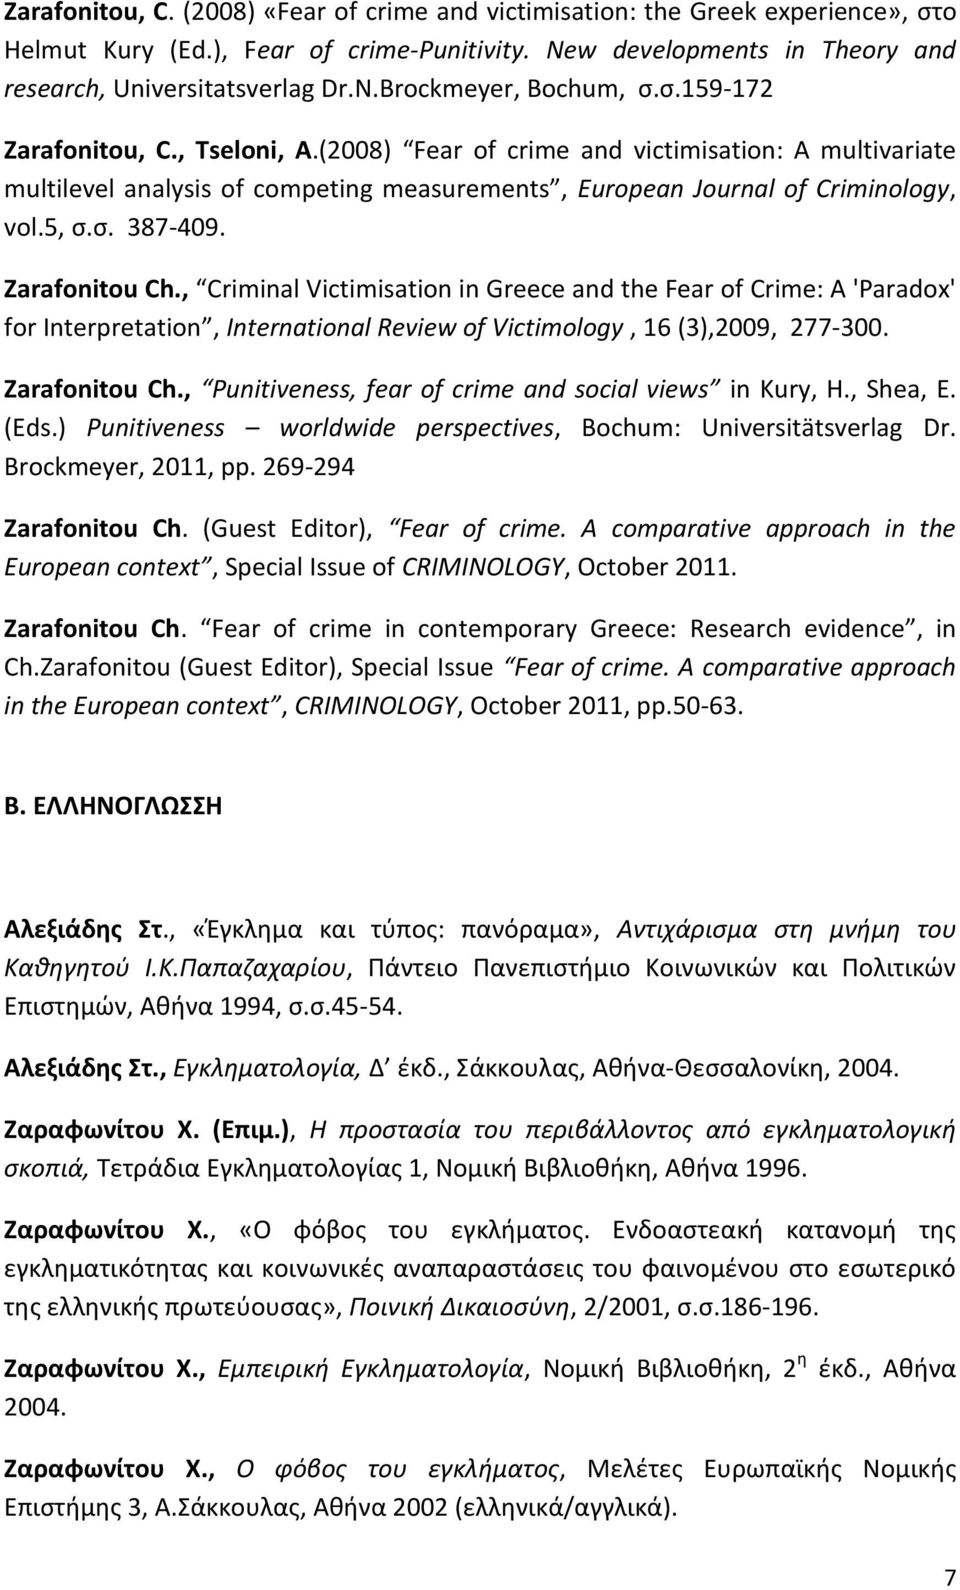 Zarafonitou Ch., Criminal Victimisation in Greece and the Fear of Crime: A 'Paradox' for Interpretation, International Review of Victimology, 16 (3),2009, 277-300. Zarafonitou Ch.